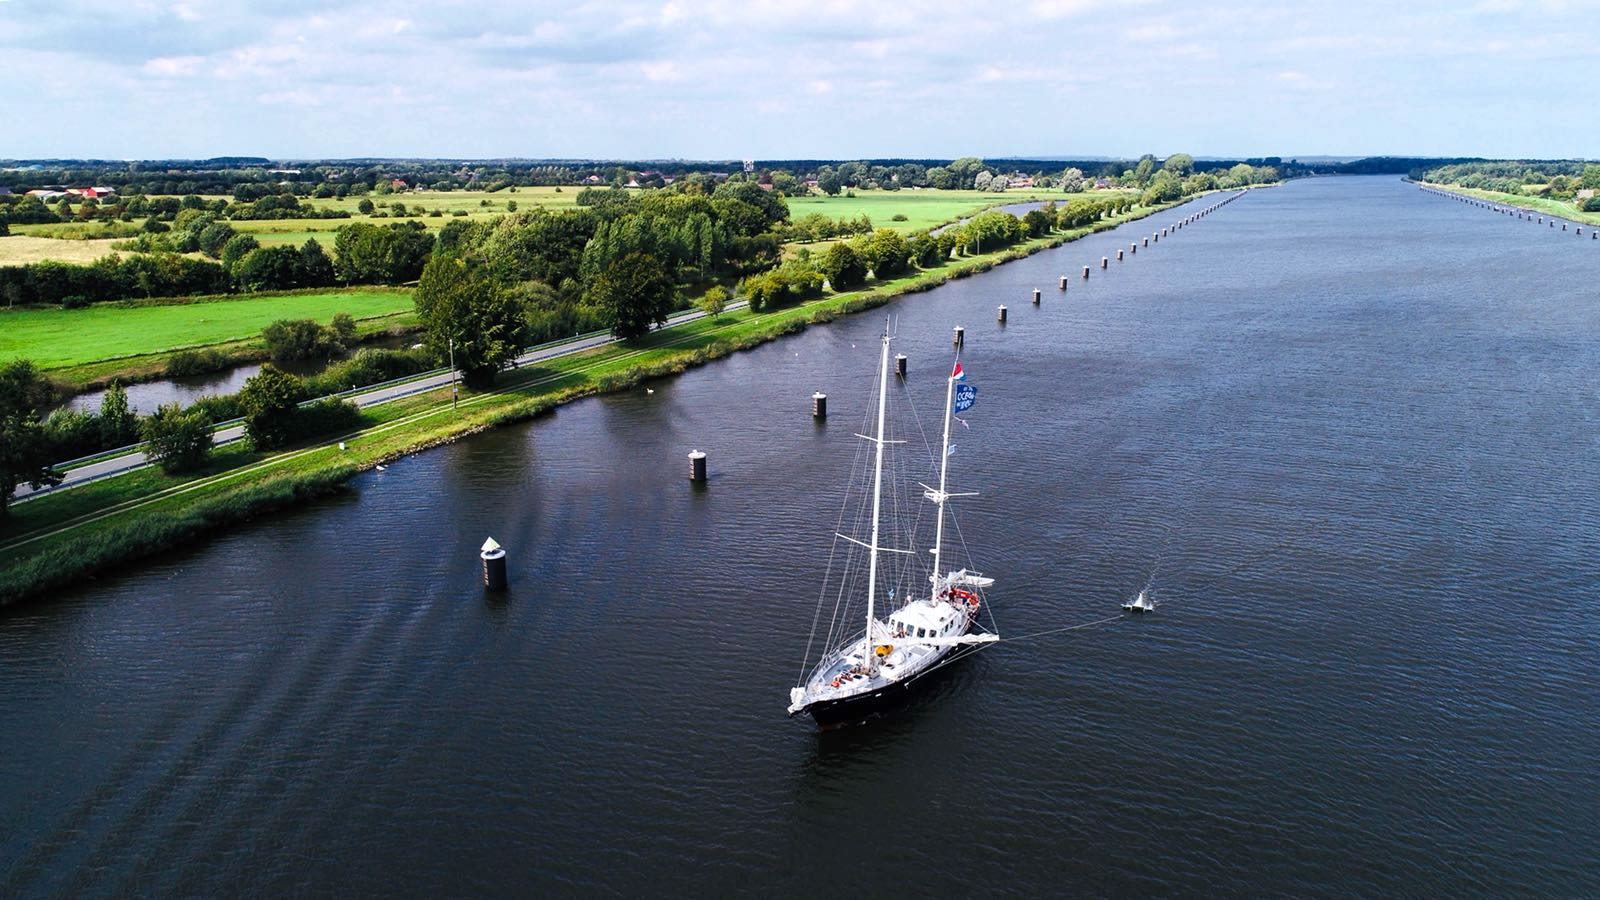 Manta Trawl testing in the Kiel canal.